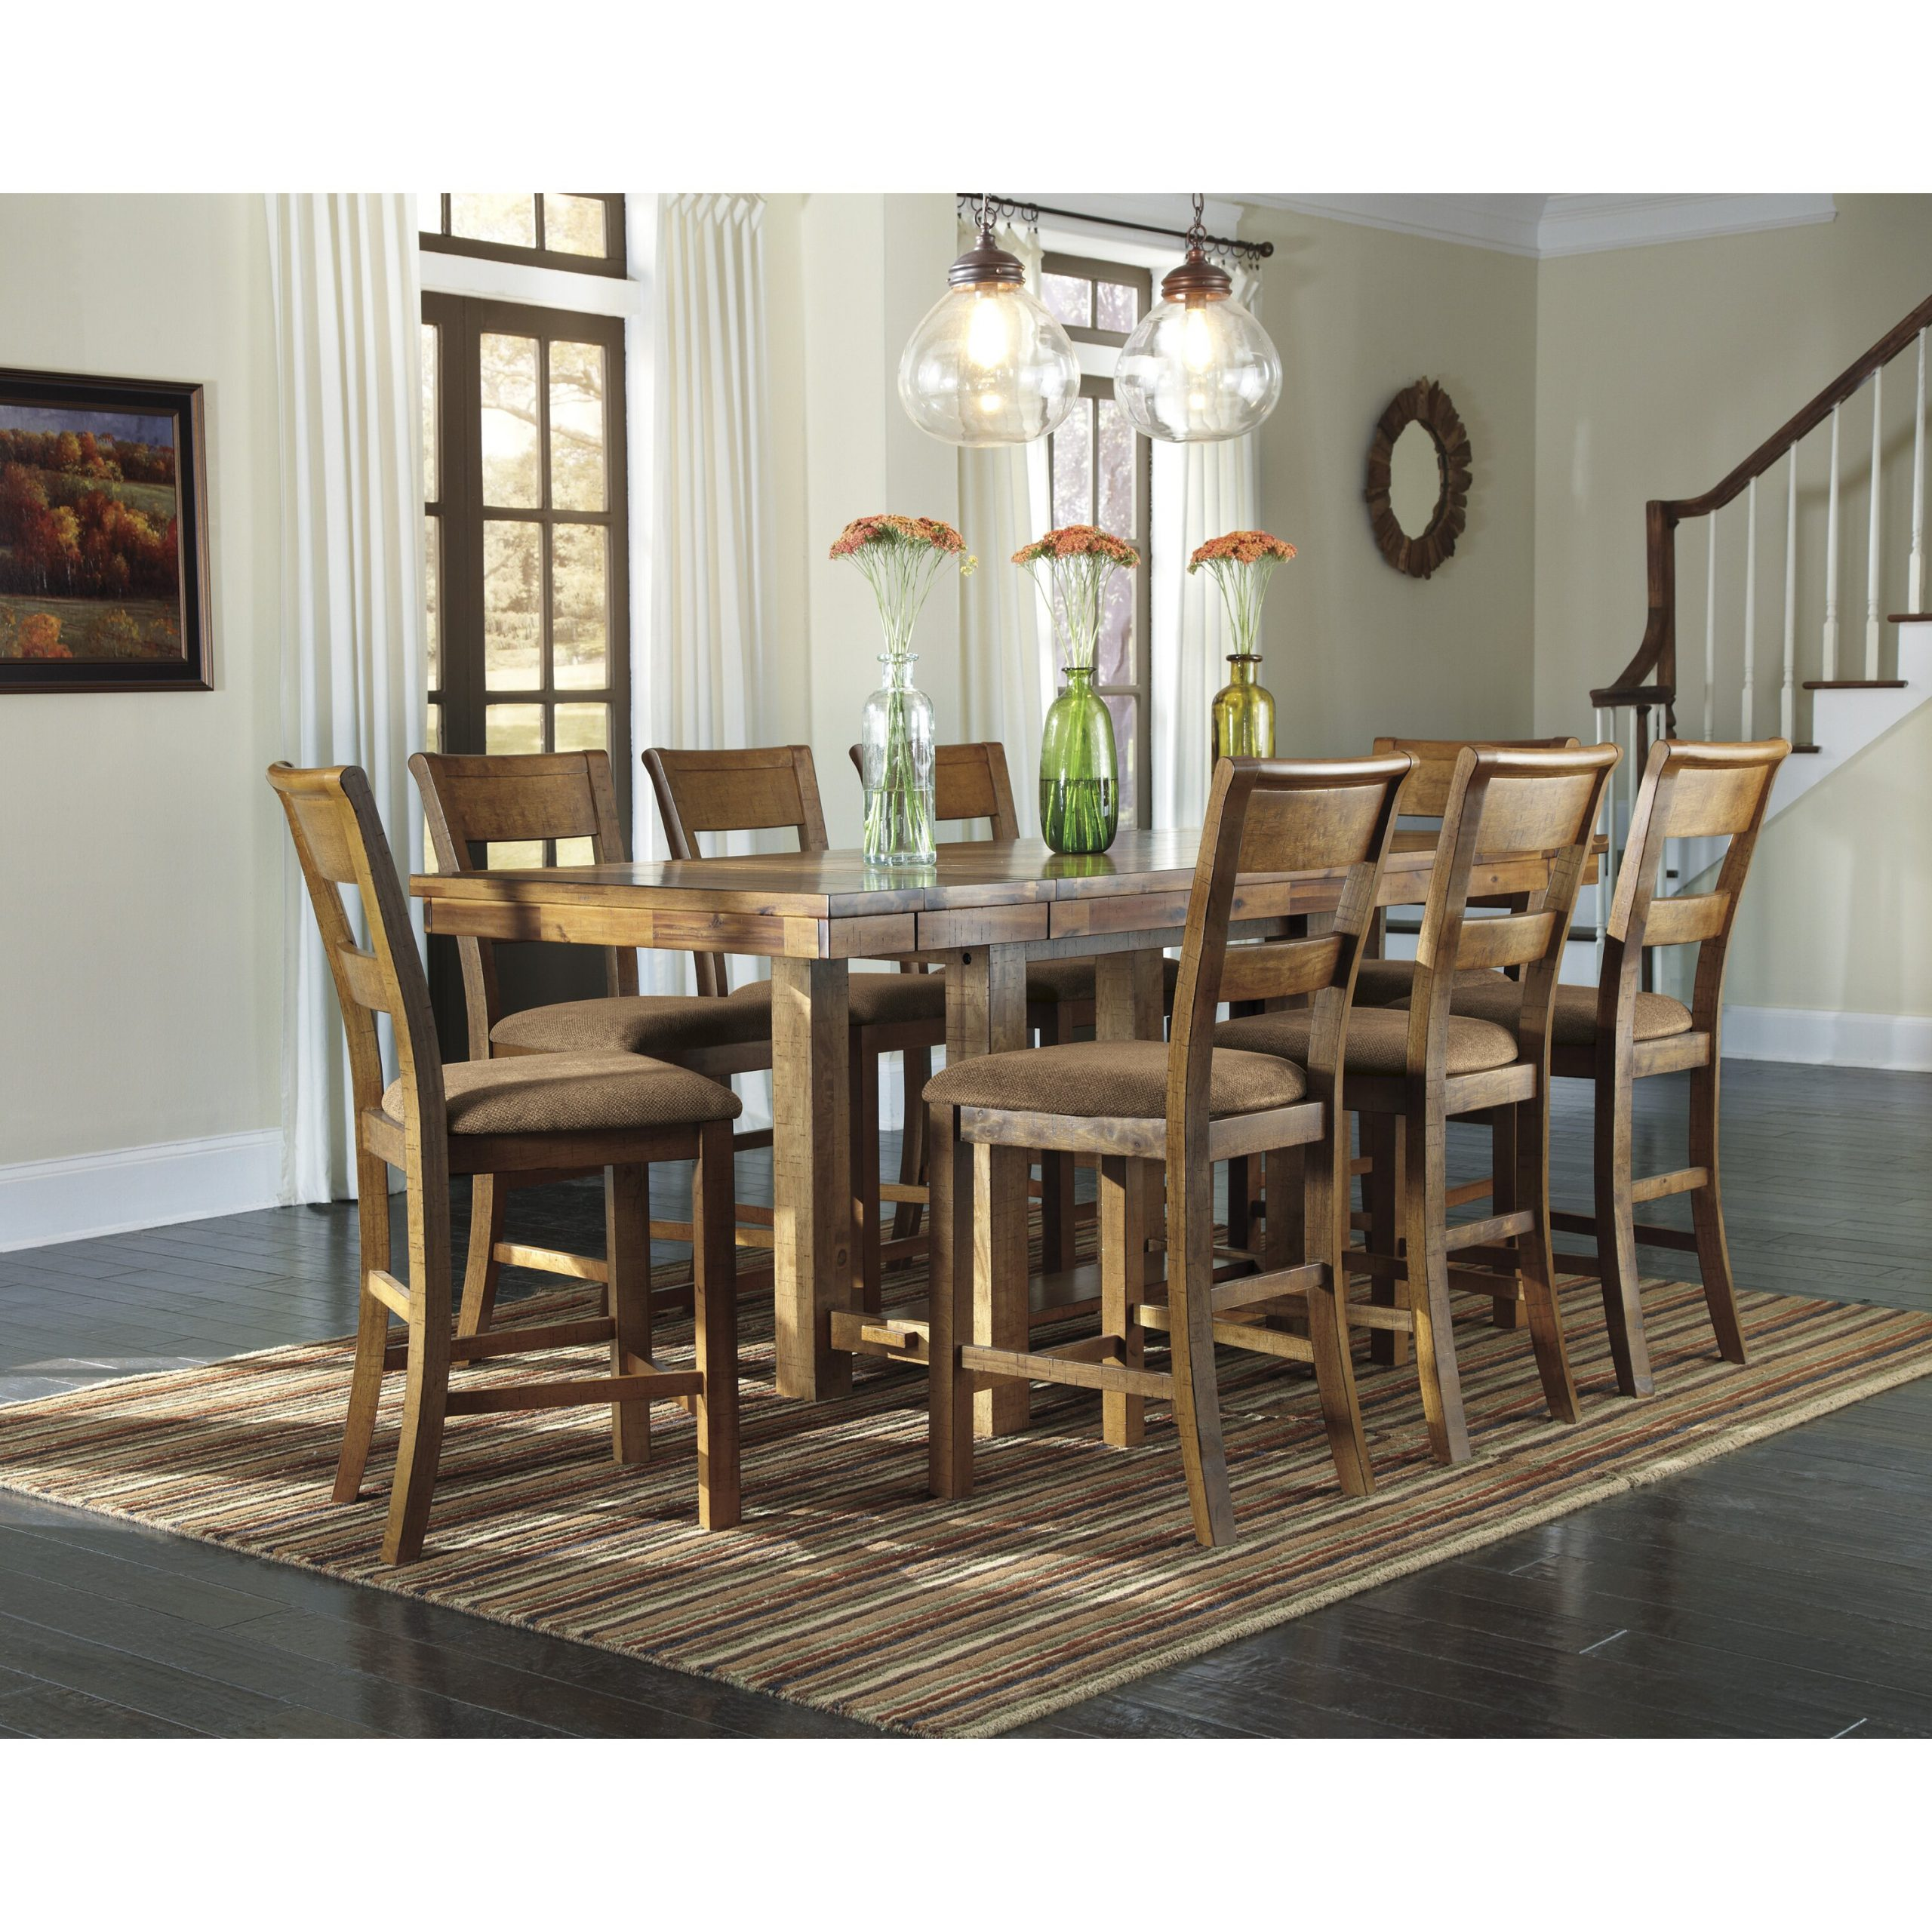 Loon Peak Cowley Counter Height Extendable Dining Table Pertaining To Best And Newest Counter Height Extendable Dining Tables (View 2 of 15)